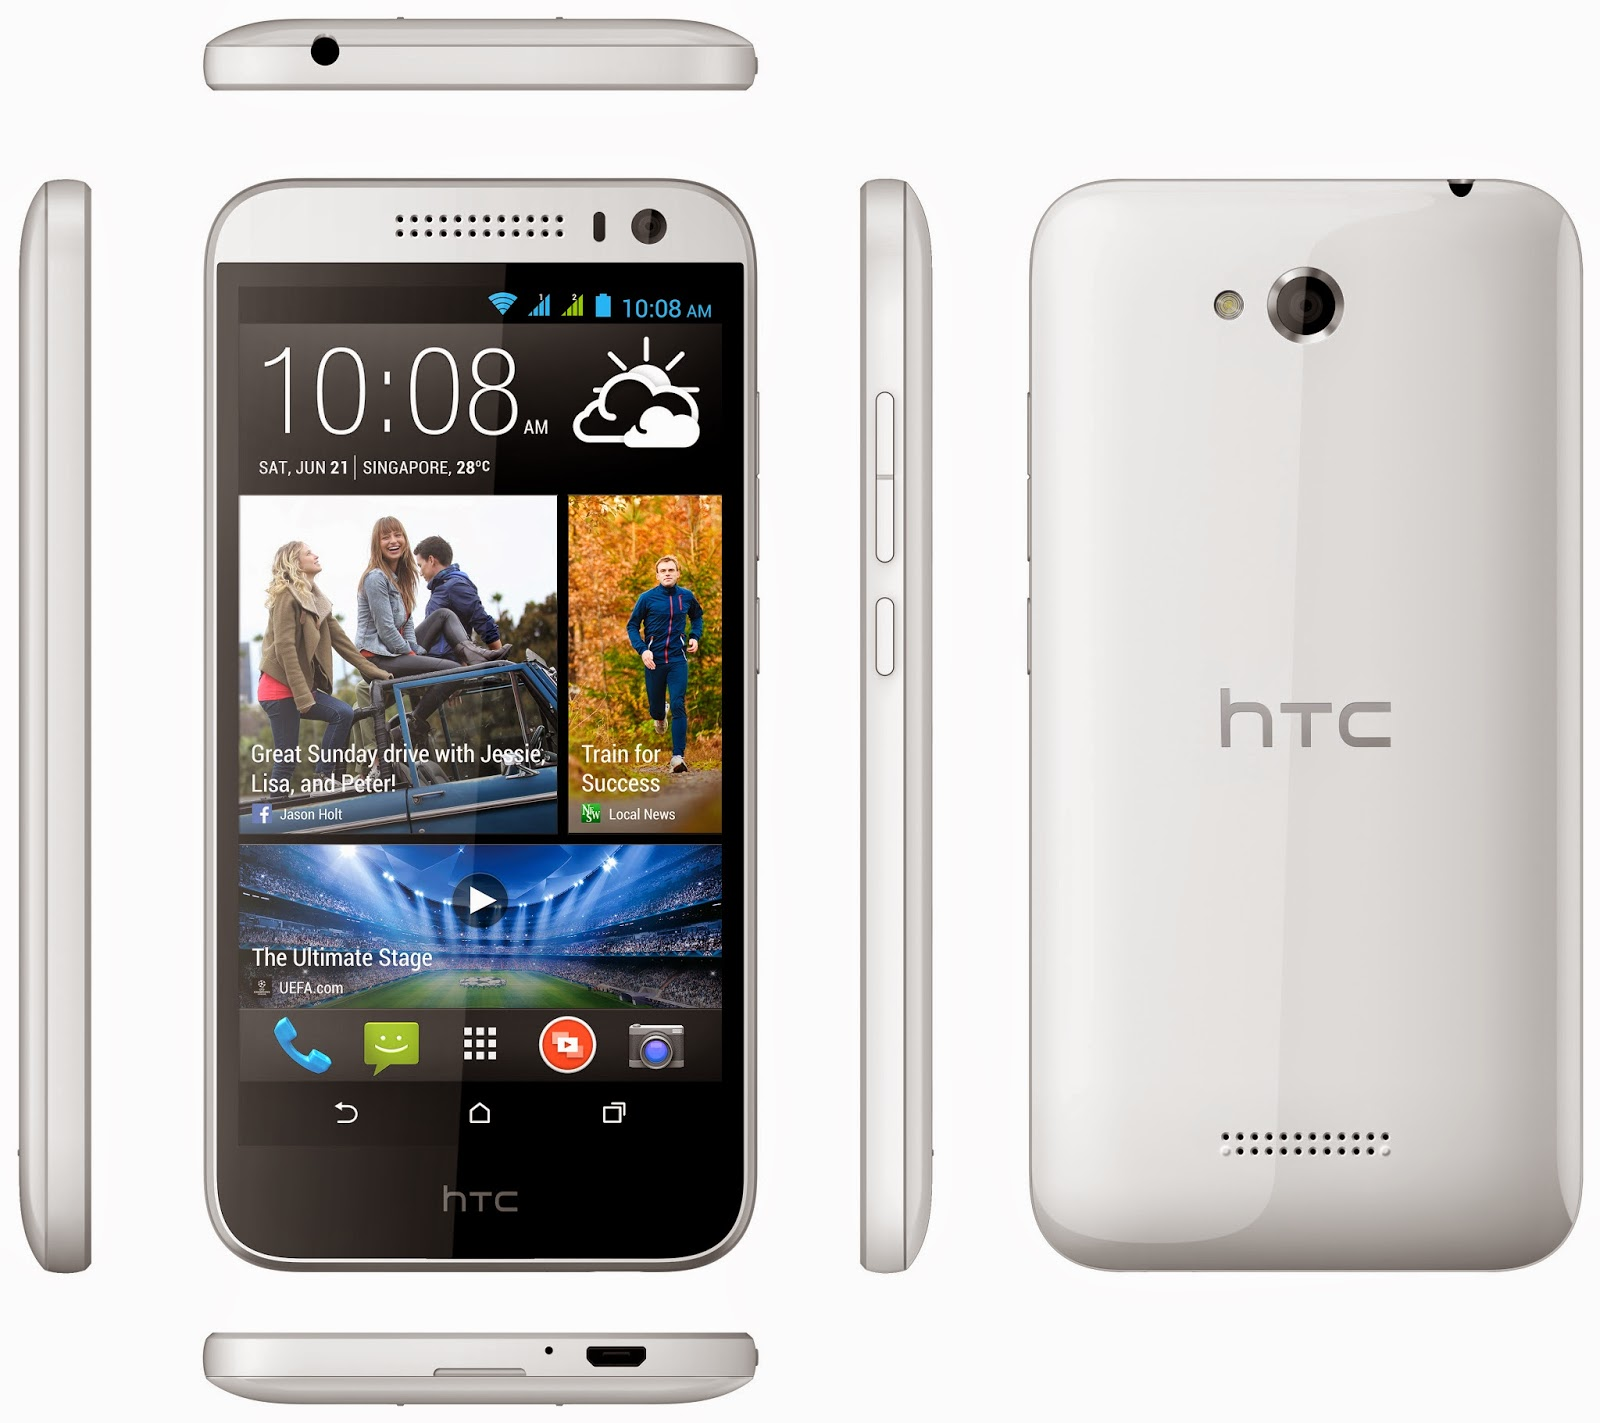 Samsung Galaxy Grand 2, HTC Desire 816, Samsung Galaxy Grand 2 vs HTC Desire 816, Los nuevos smartphones Android, cámara de alta resolución,